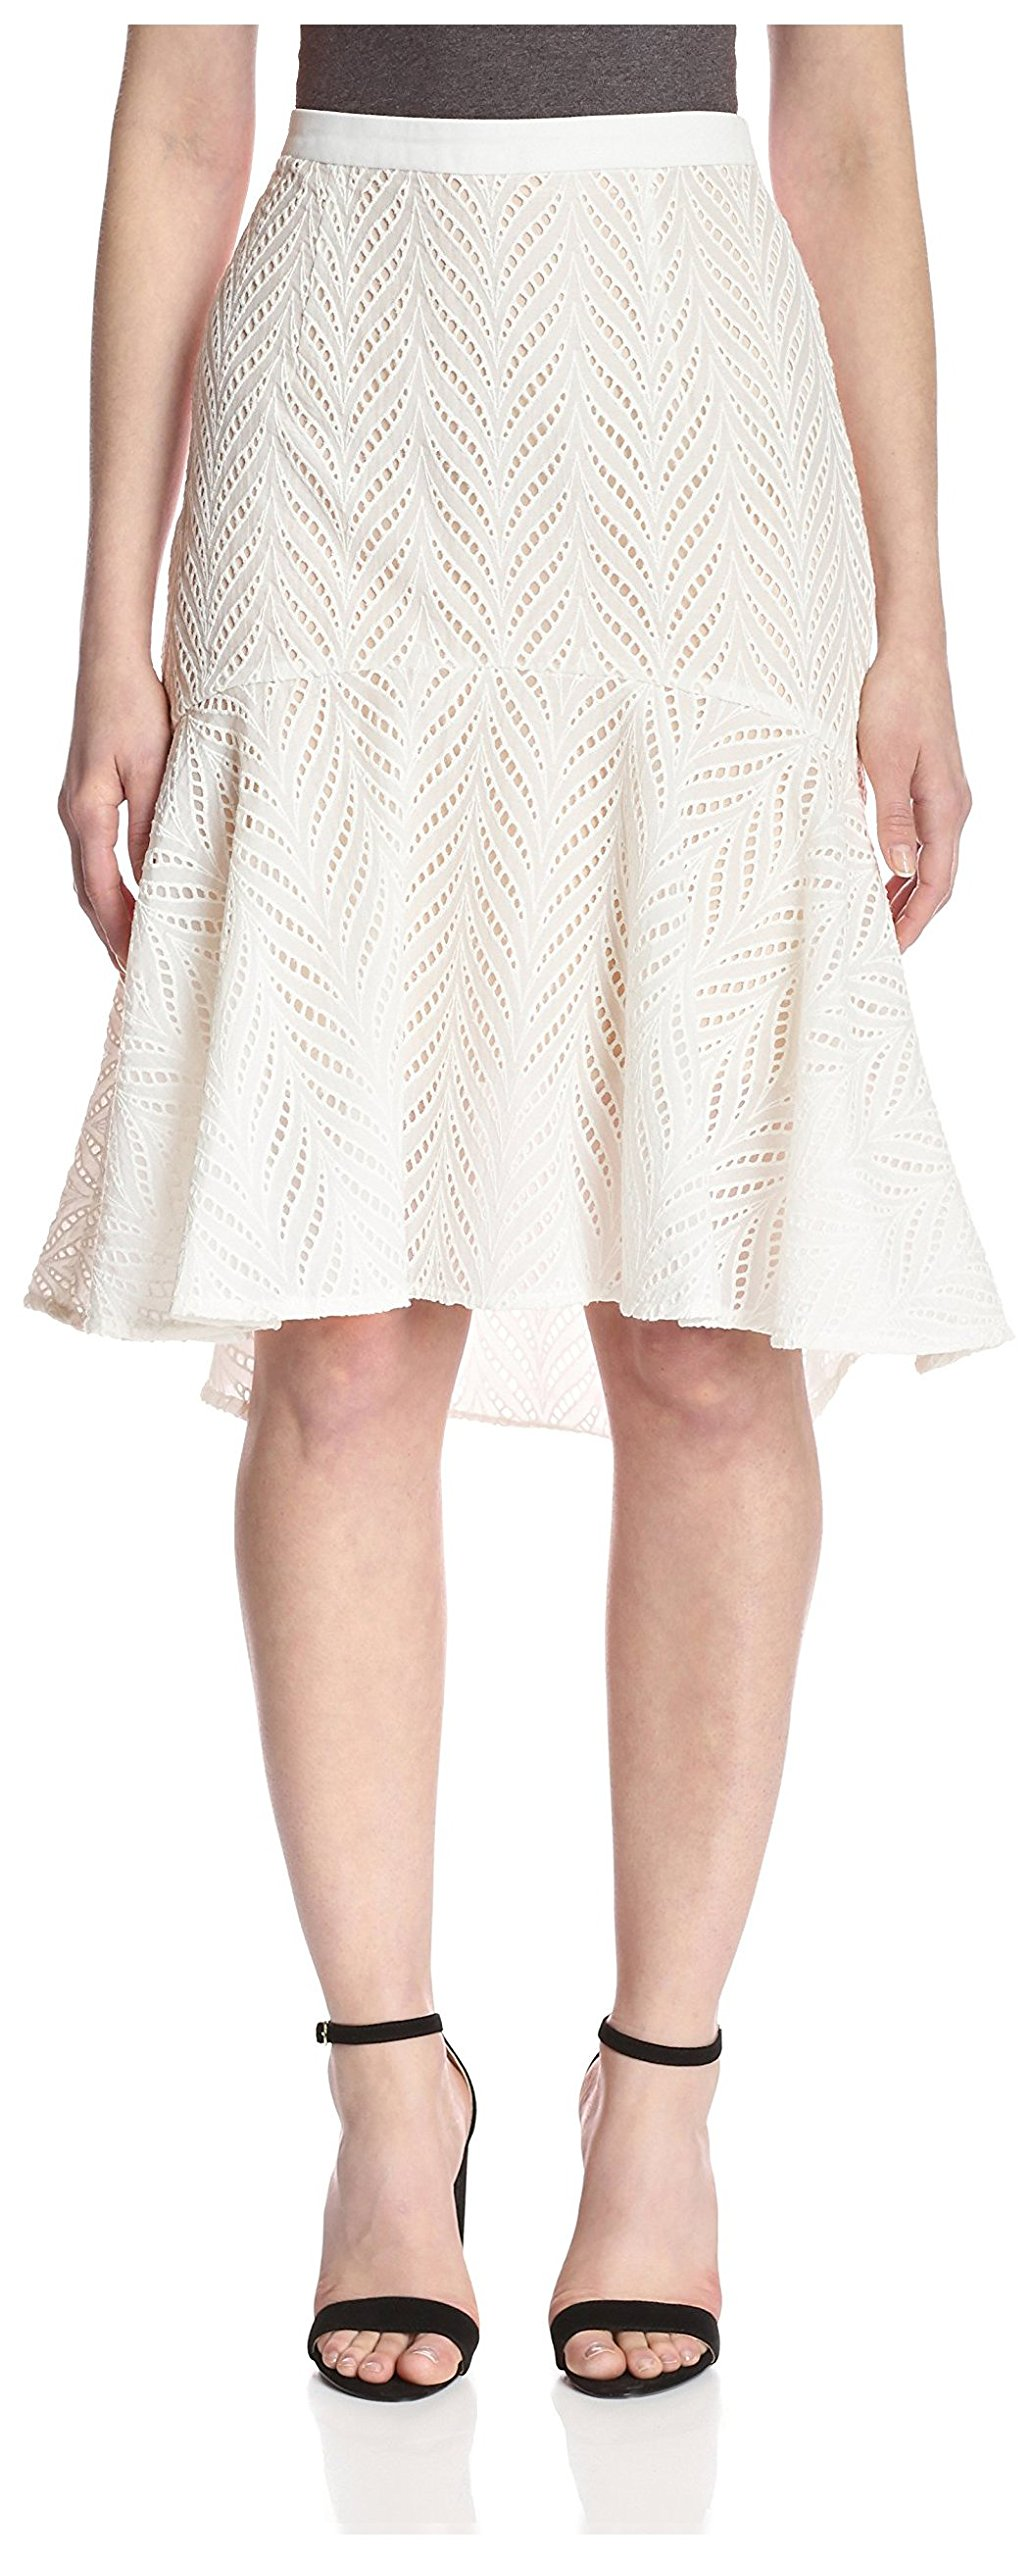 Aijek Women's Eyelet Skirt, Ivory, 2 US